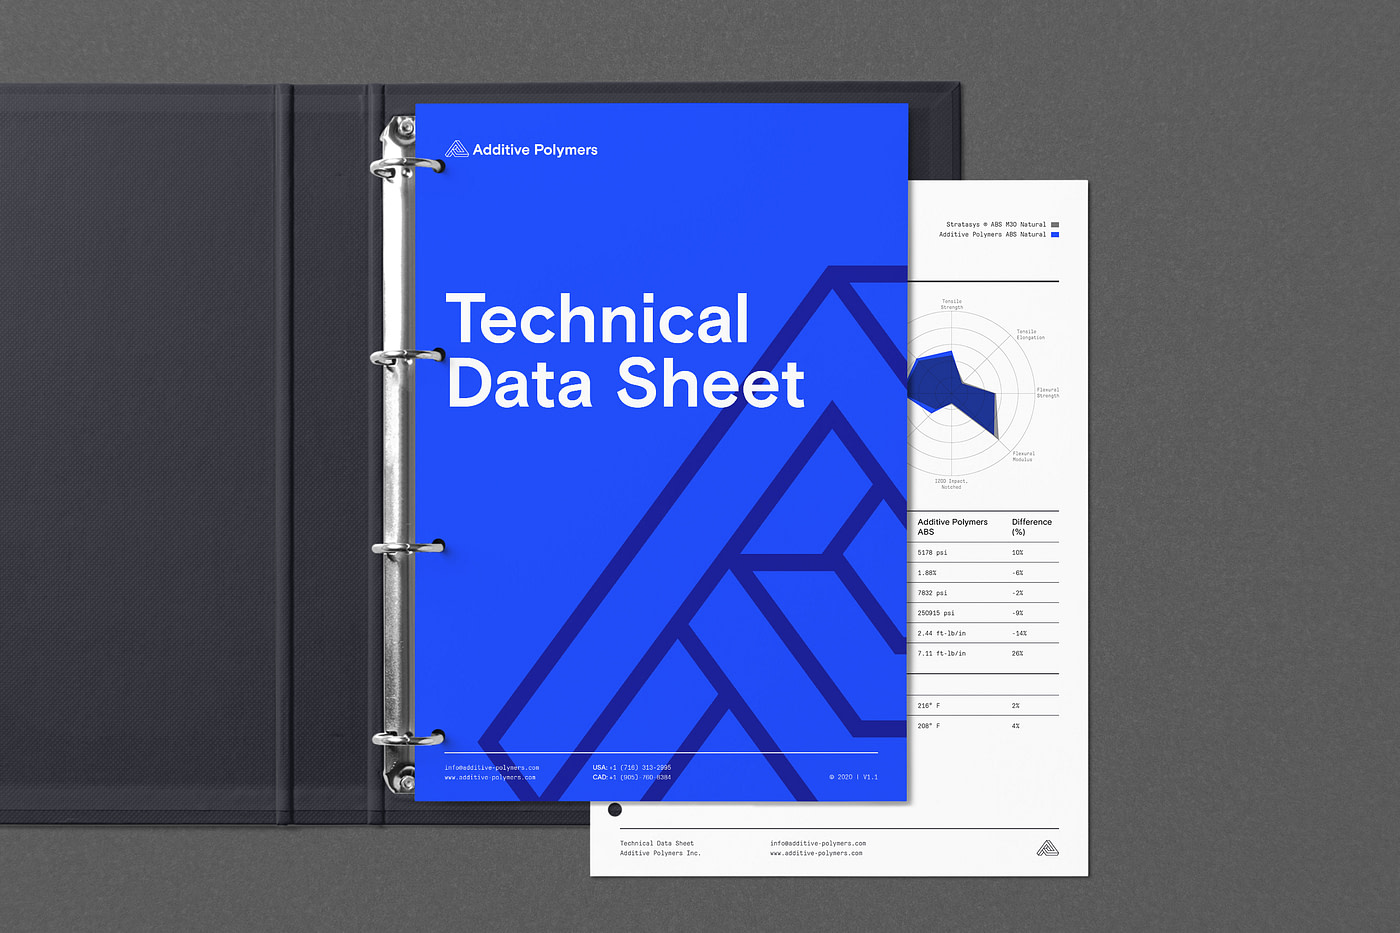 Blue and white binder includes a Technical Data Sheet for 3D printing